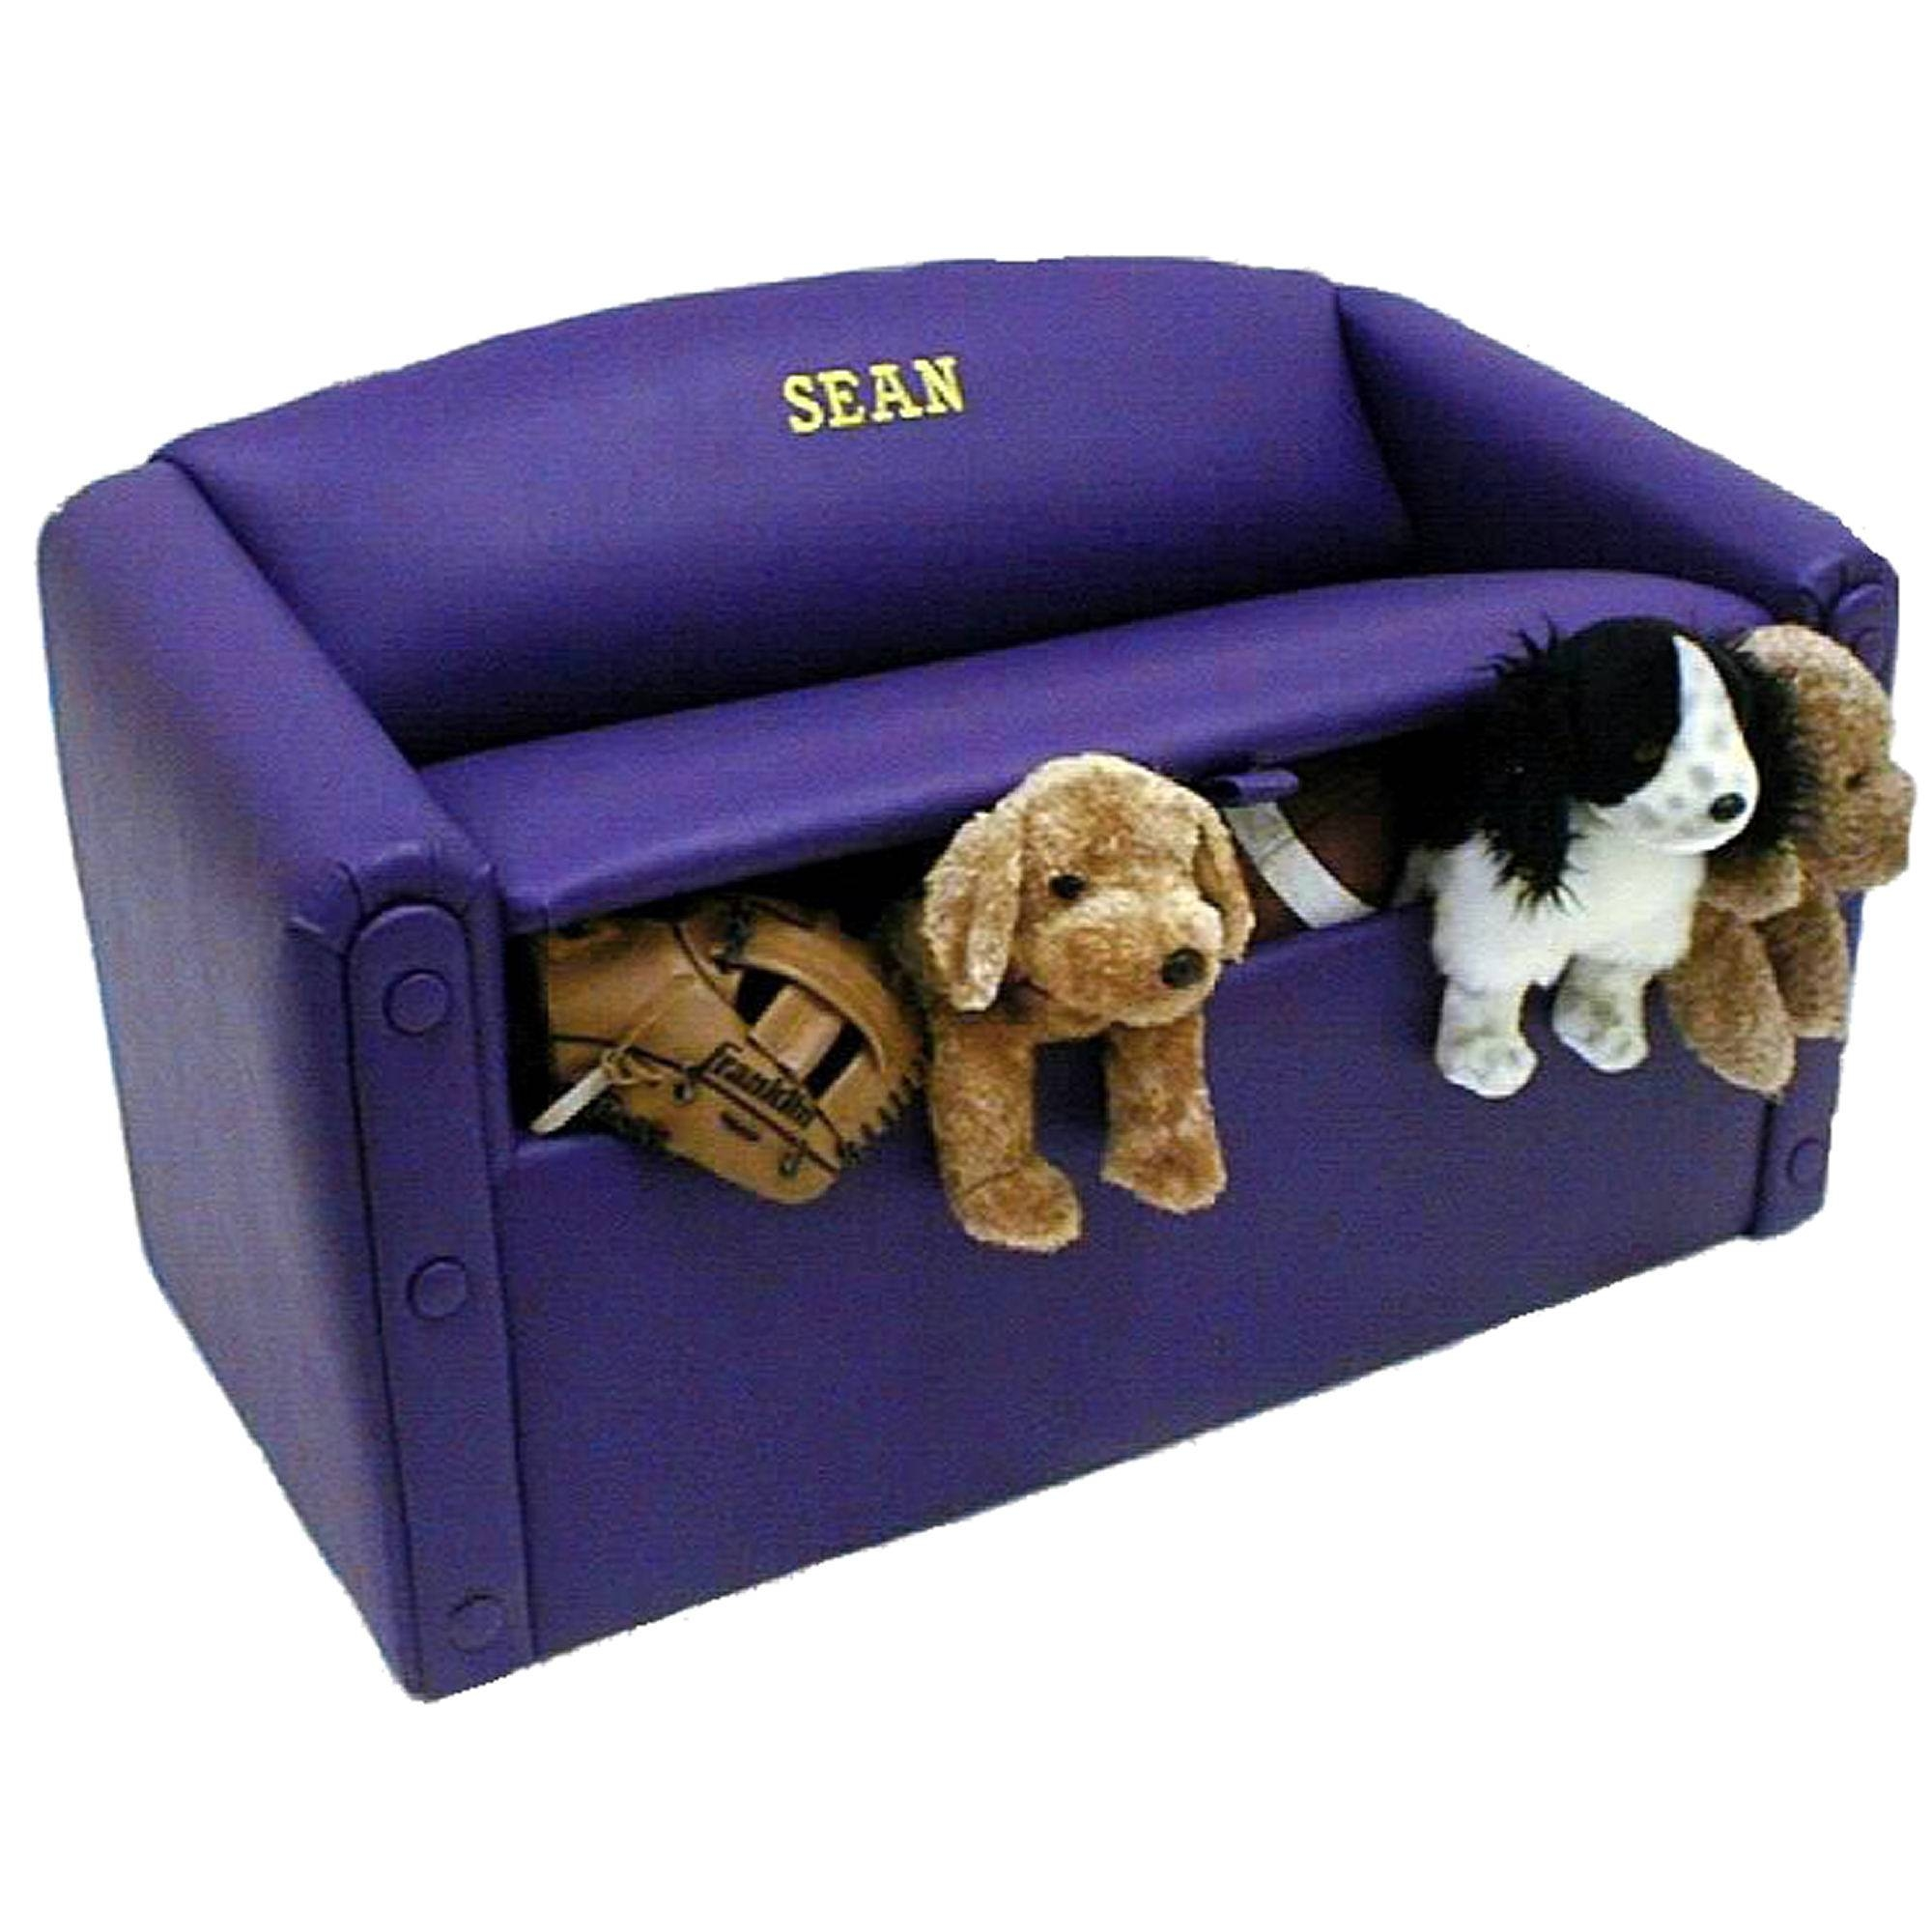 Personalized Kids Sofa & Toy Box | Toy Boxes | Kids Couch in Personalized Kids Chairs And Sofas (Image 13 of 15)